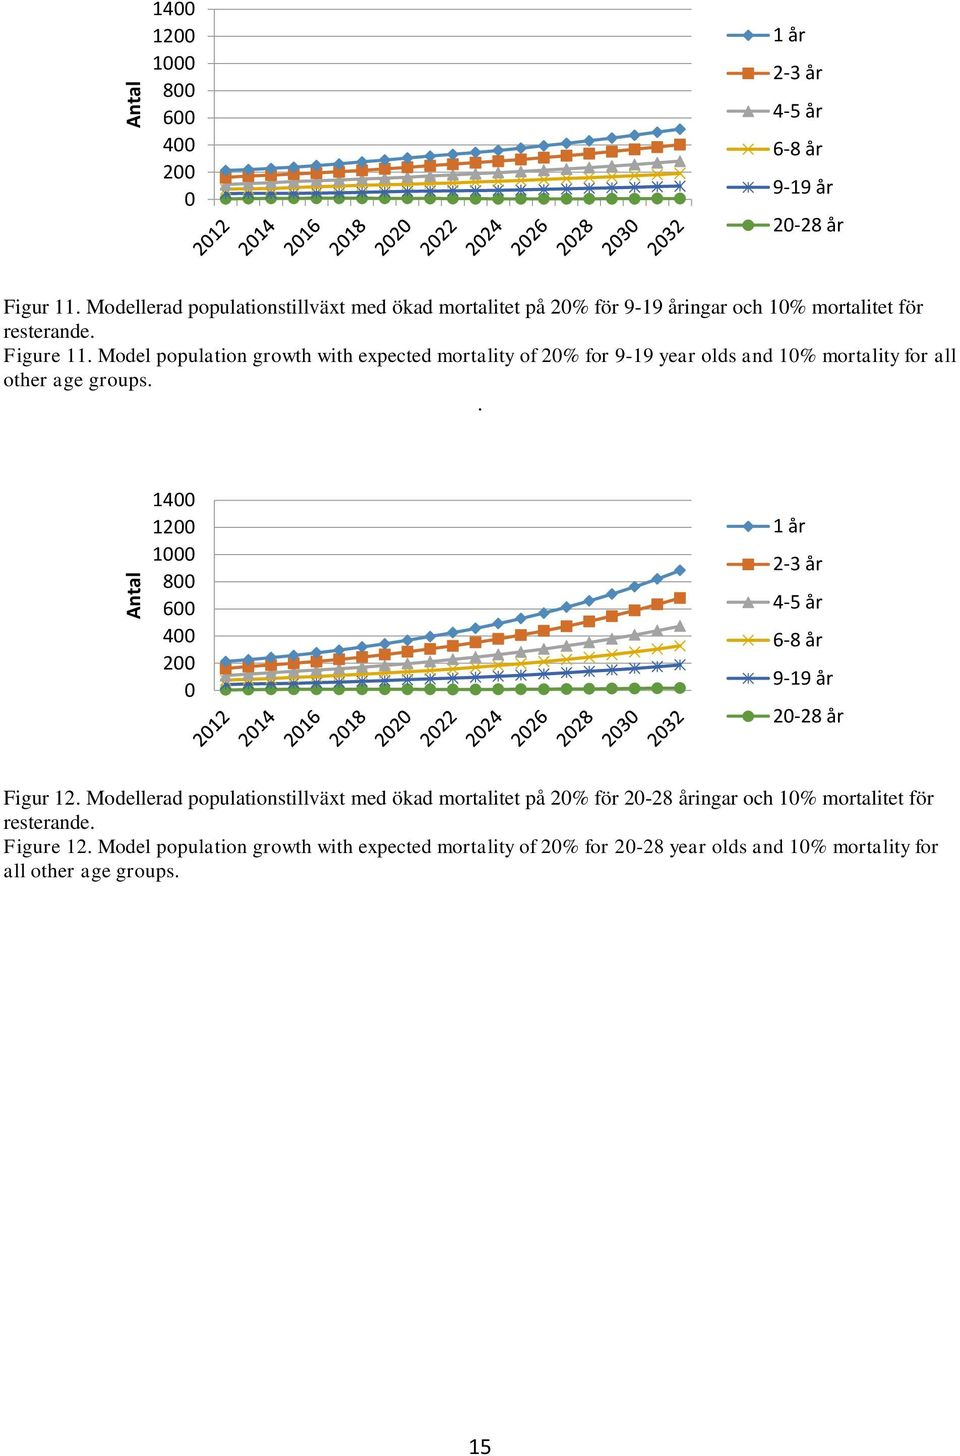 Model population growth with expected mortality of 20% for 9-19 year olds and 10% mortality for all other age groups.